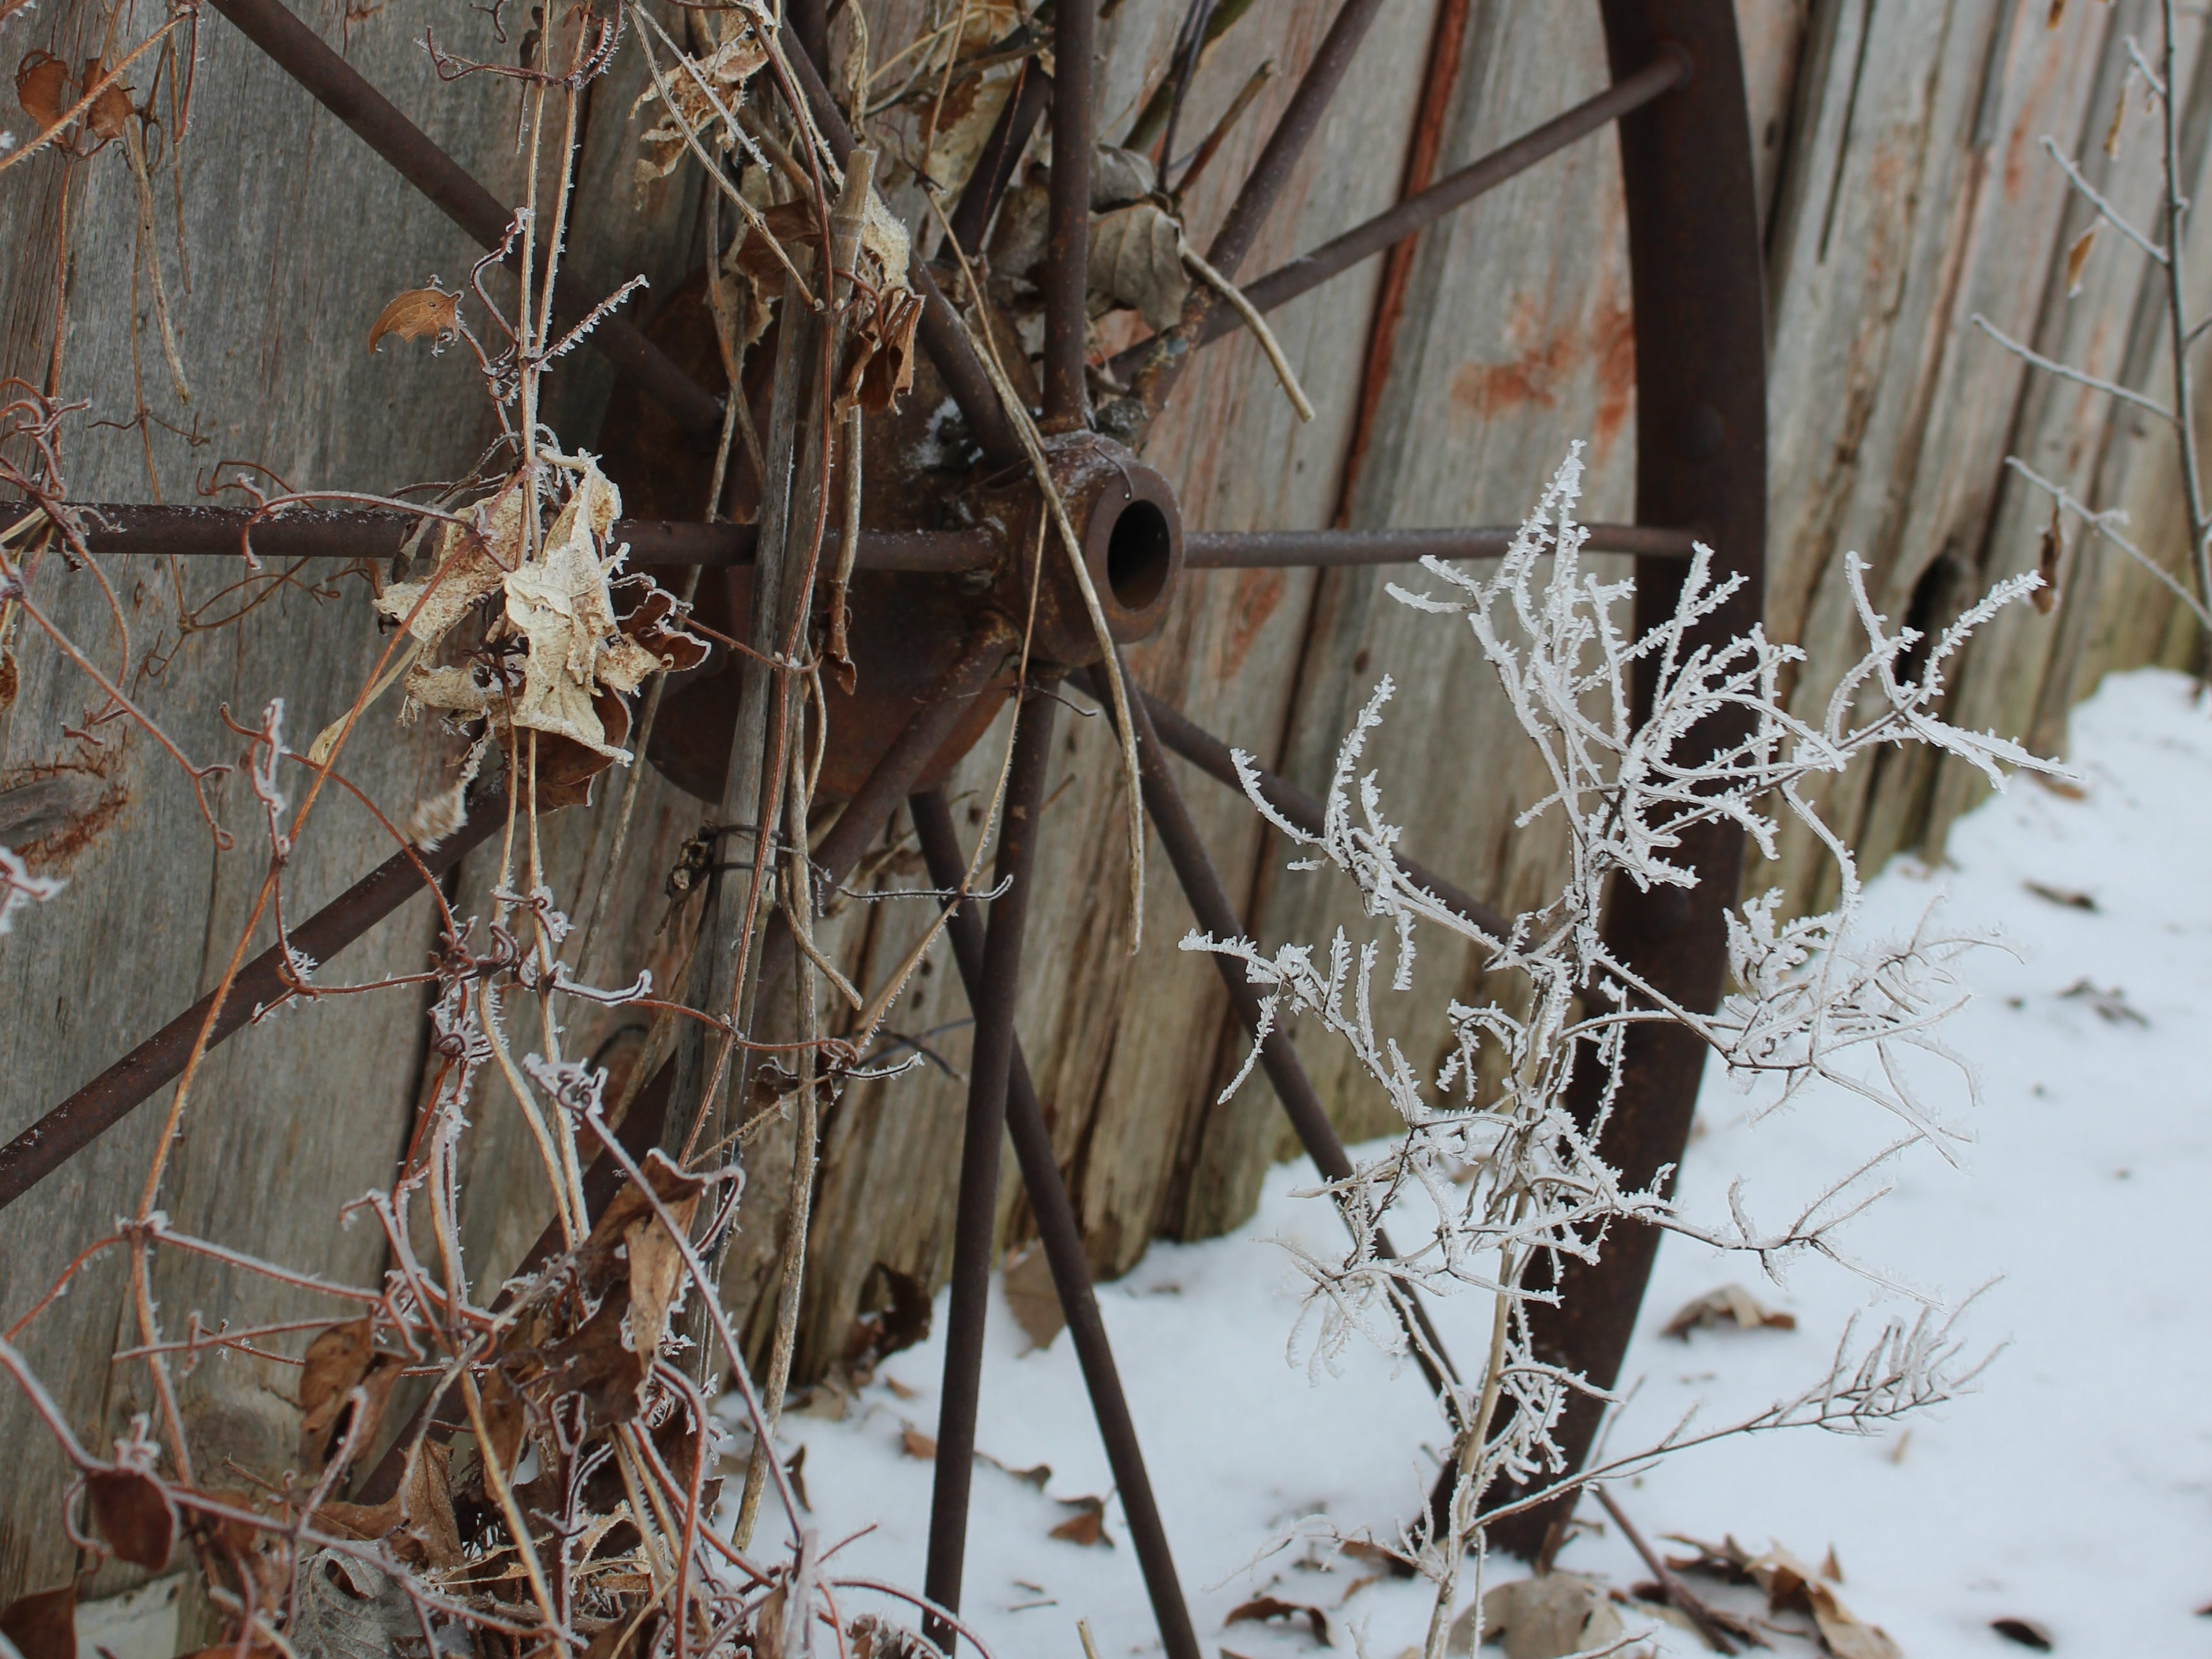 Dried honeysuckle vines and frost-covered plants decorate this old iron wheel.